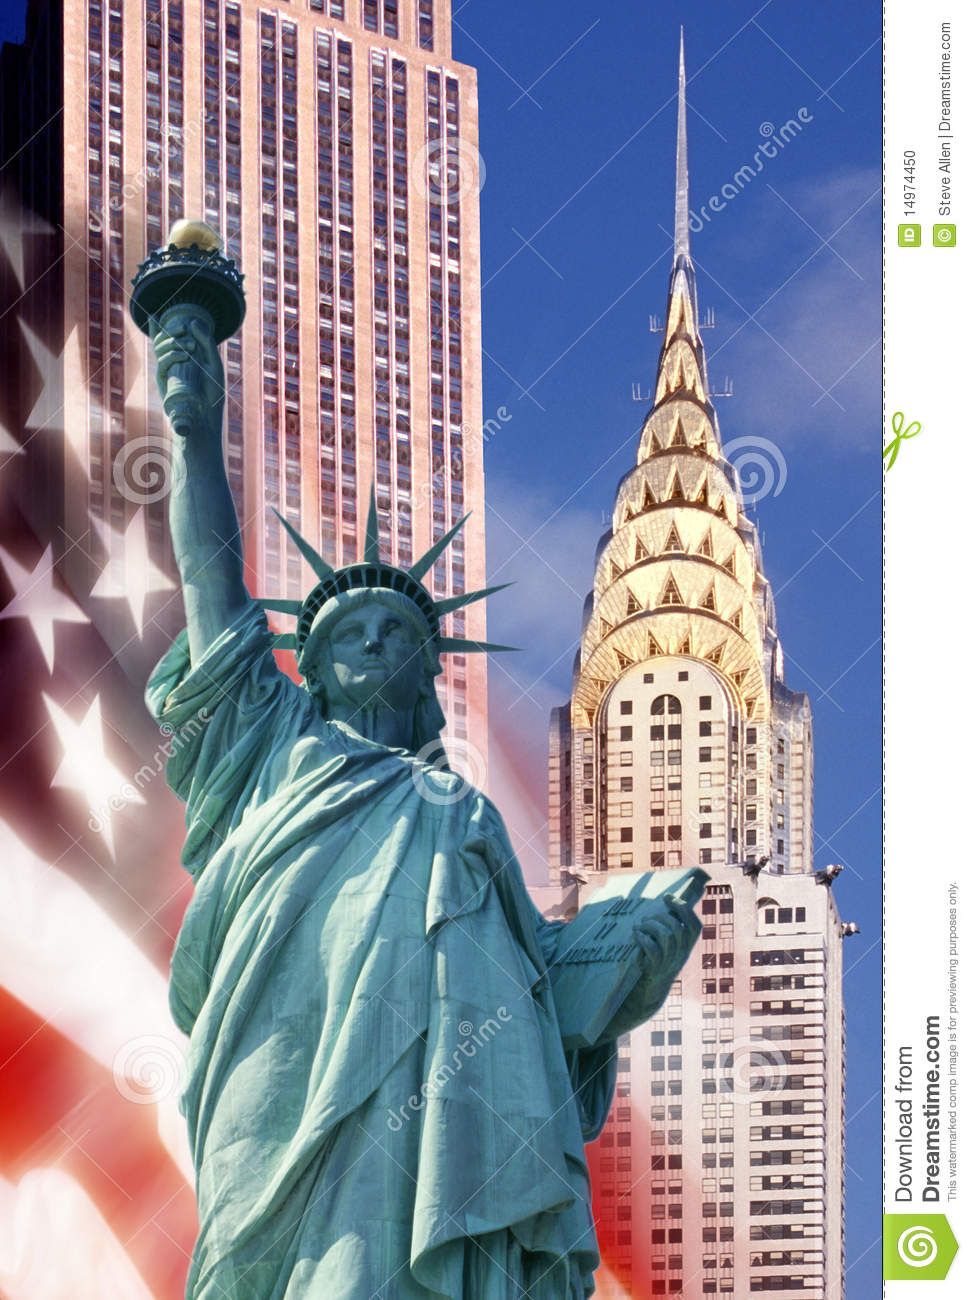 More similar stock images of ` Icons of New York - USA `